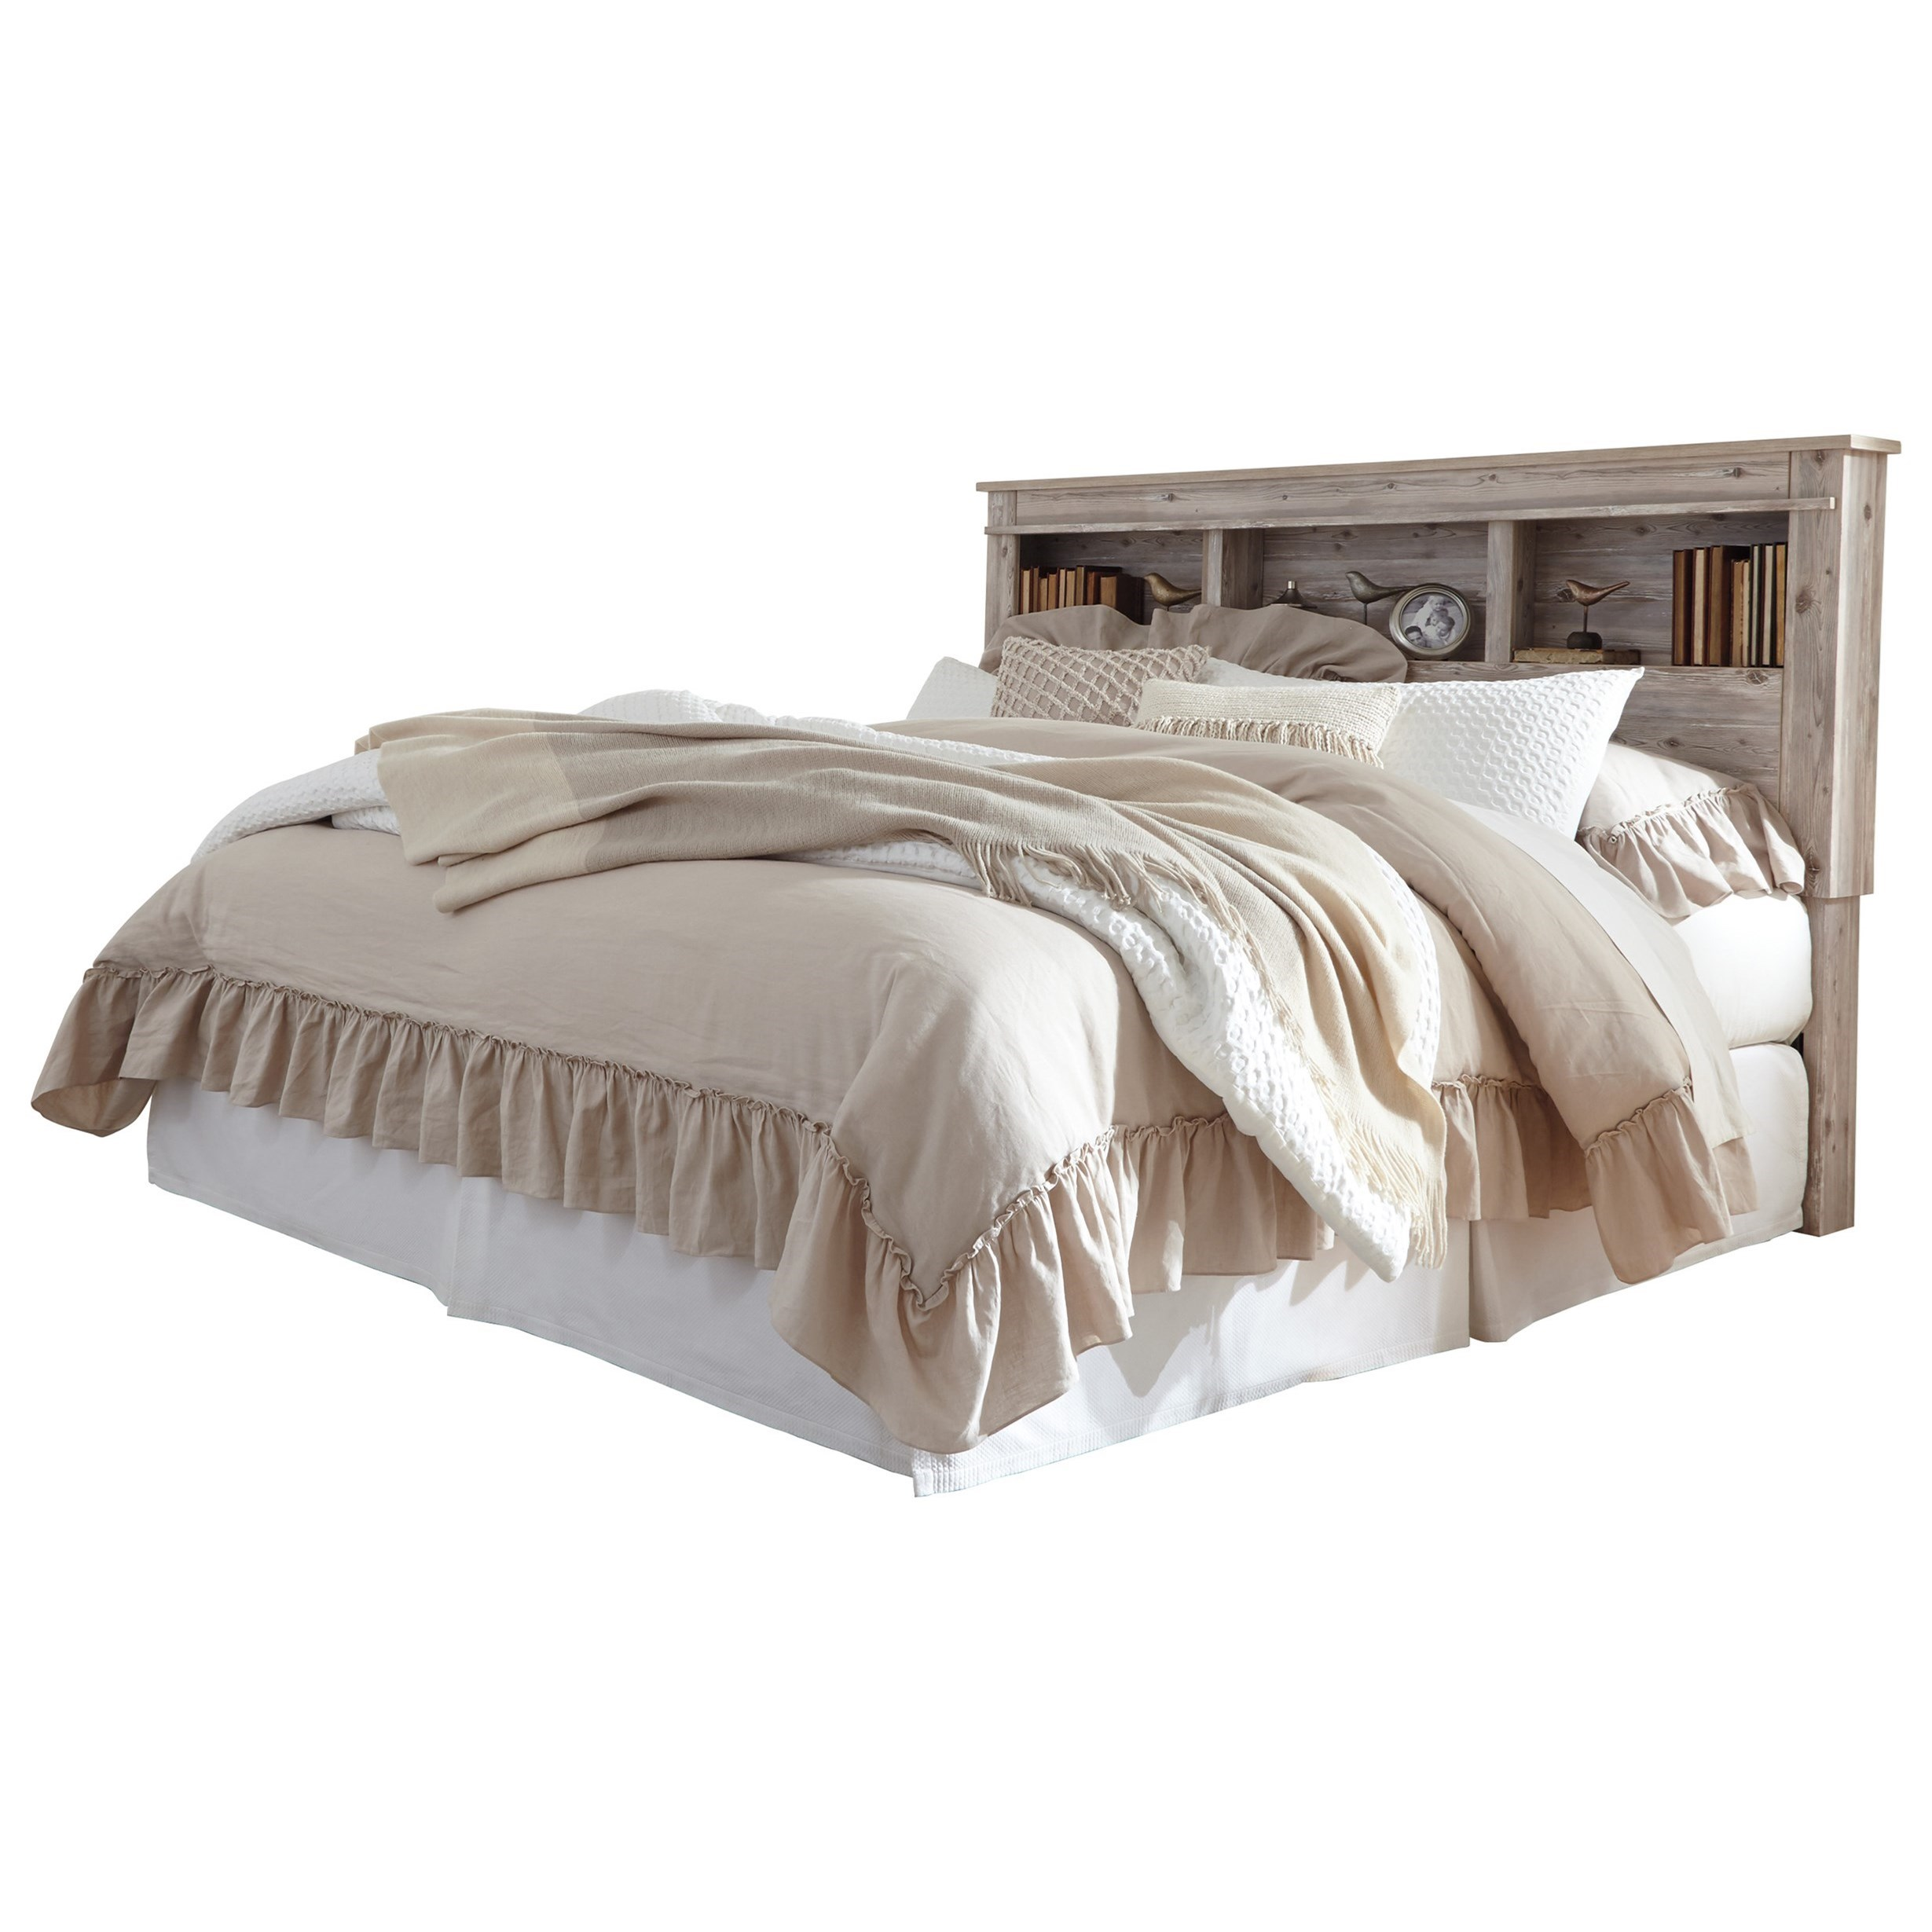 Benchcraft by ashley willabry king cal king bookcase headboard with built in led lights royal for London bedroom set with lighted headboard